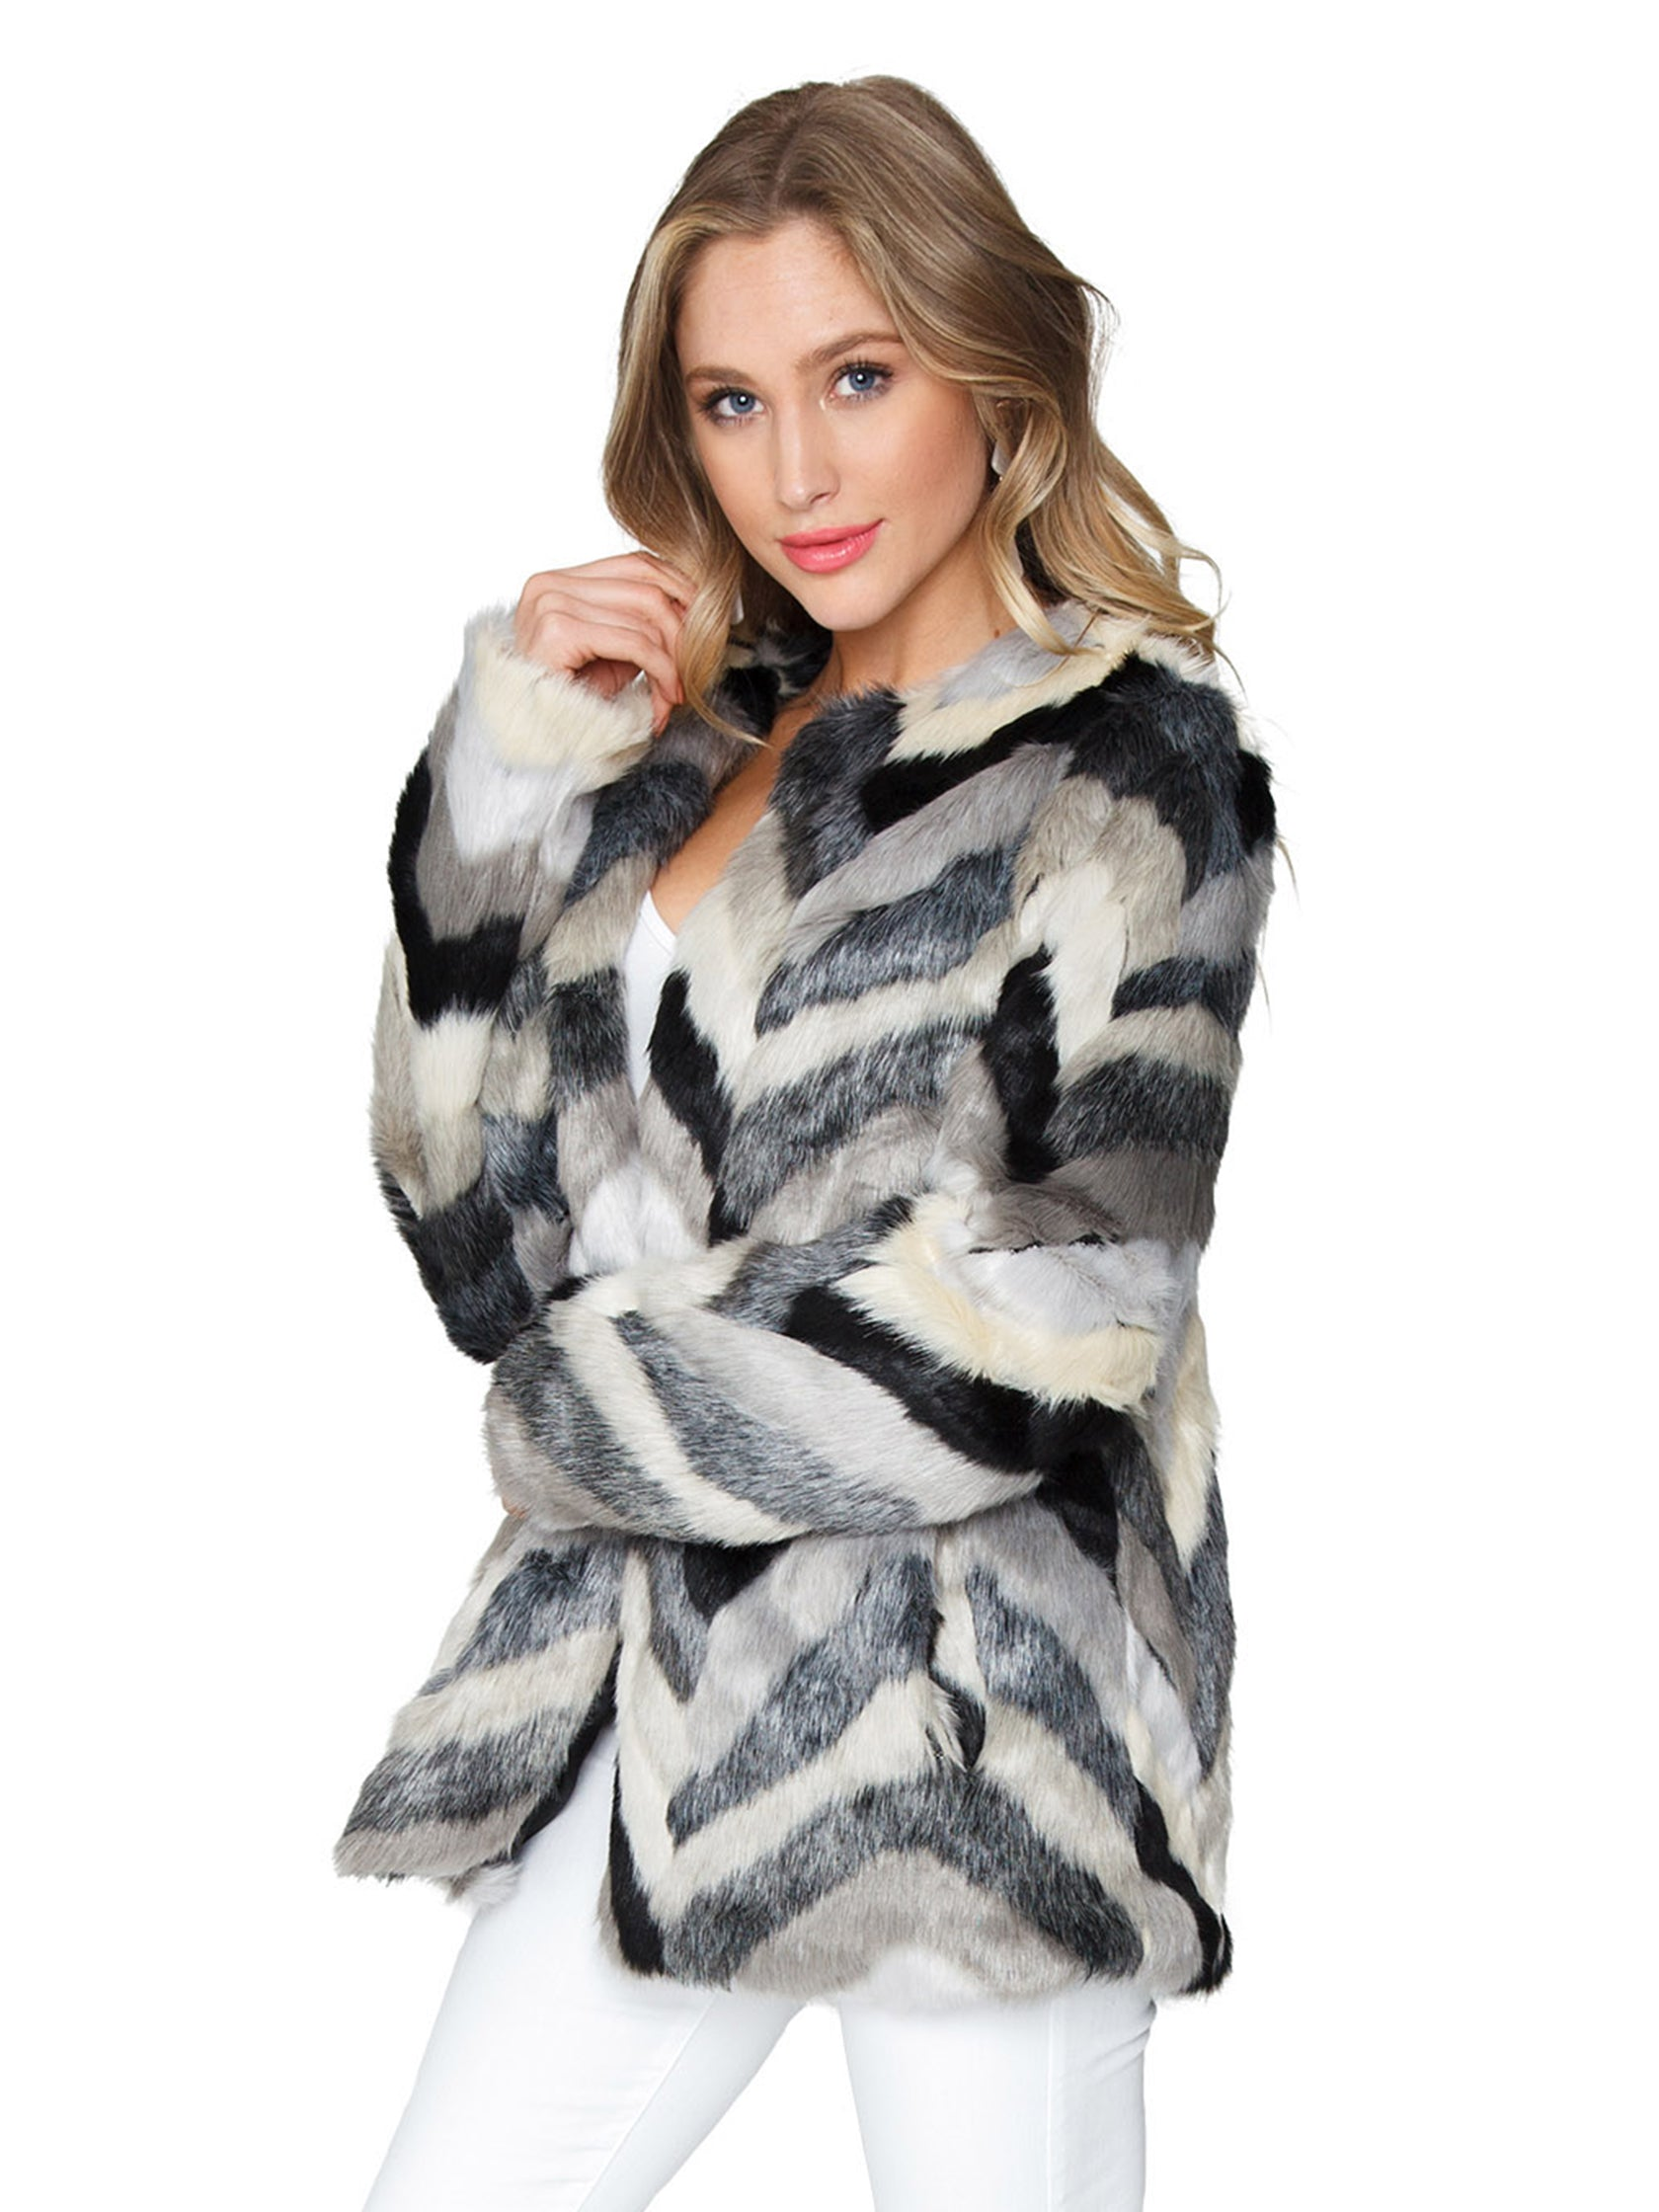 Women wearing a jacket rental from FashionPass called Chevron Faux Fur Jacket